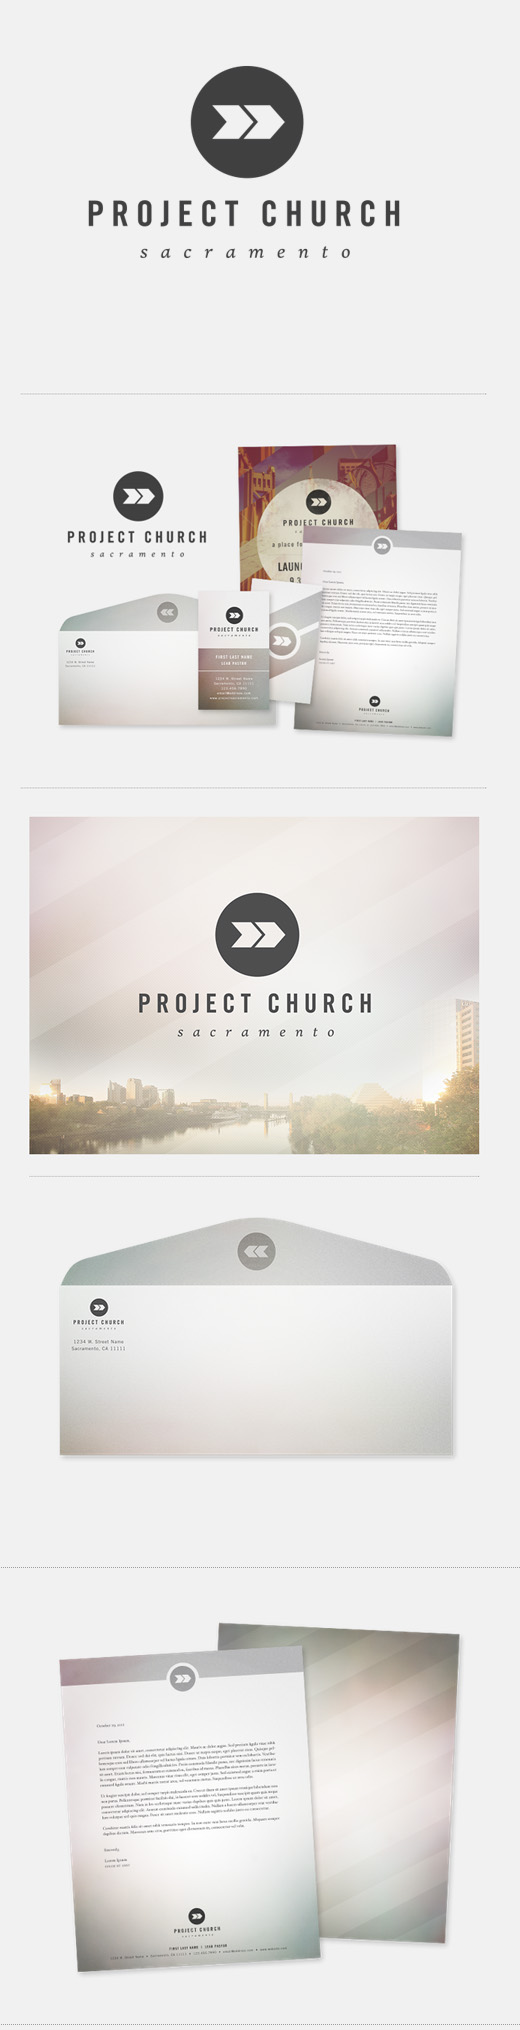 project church logo design